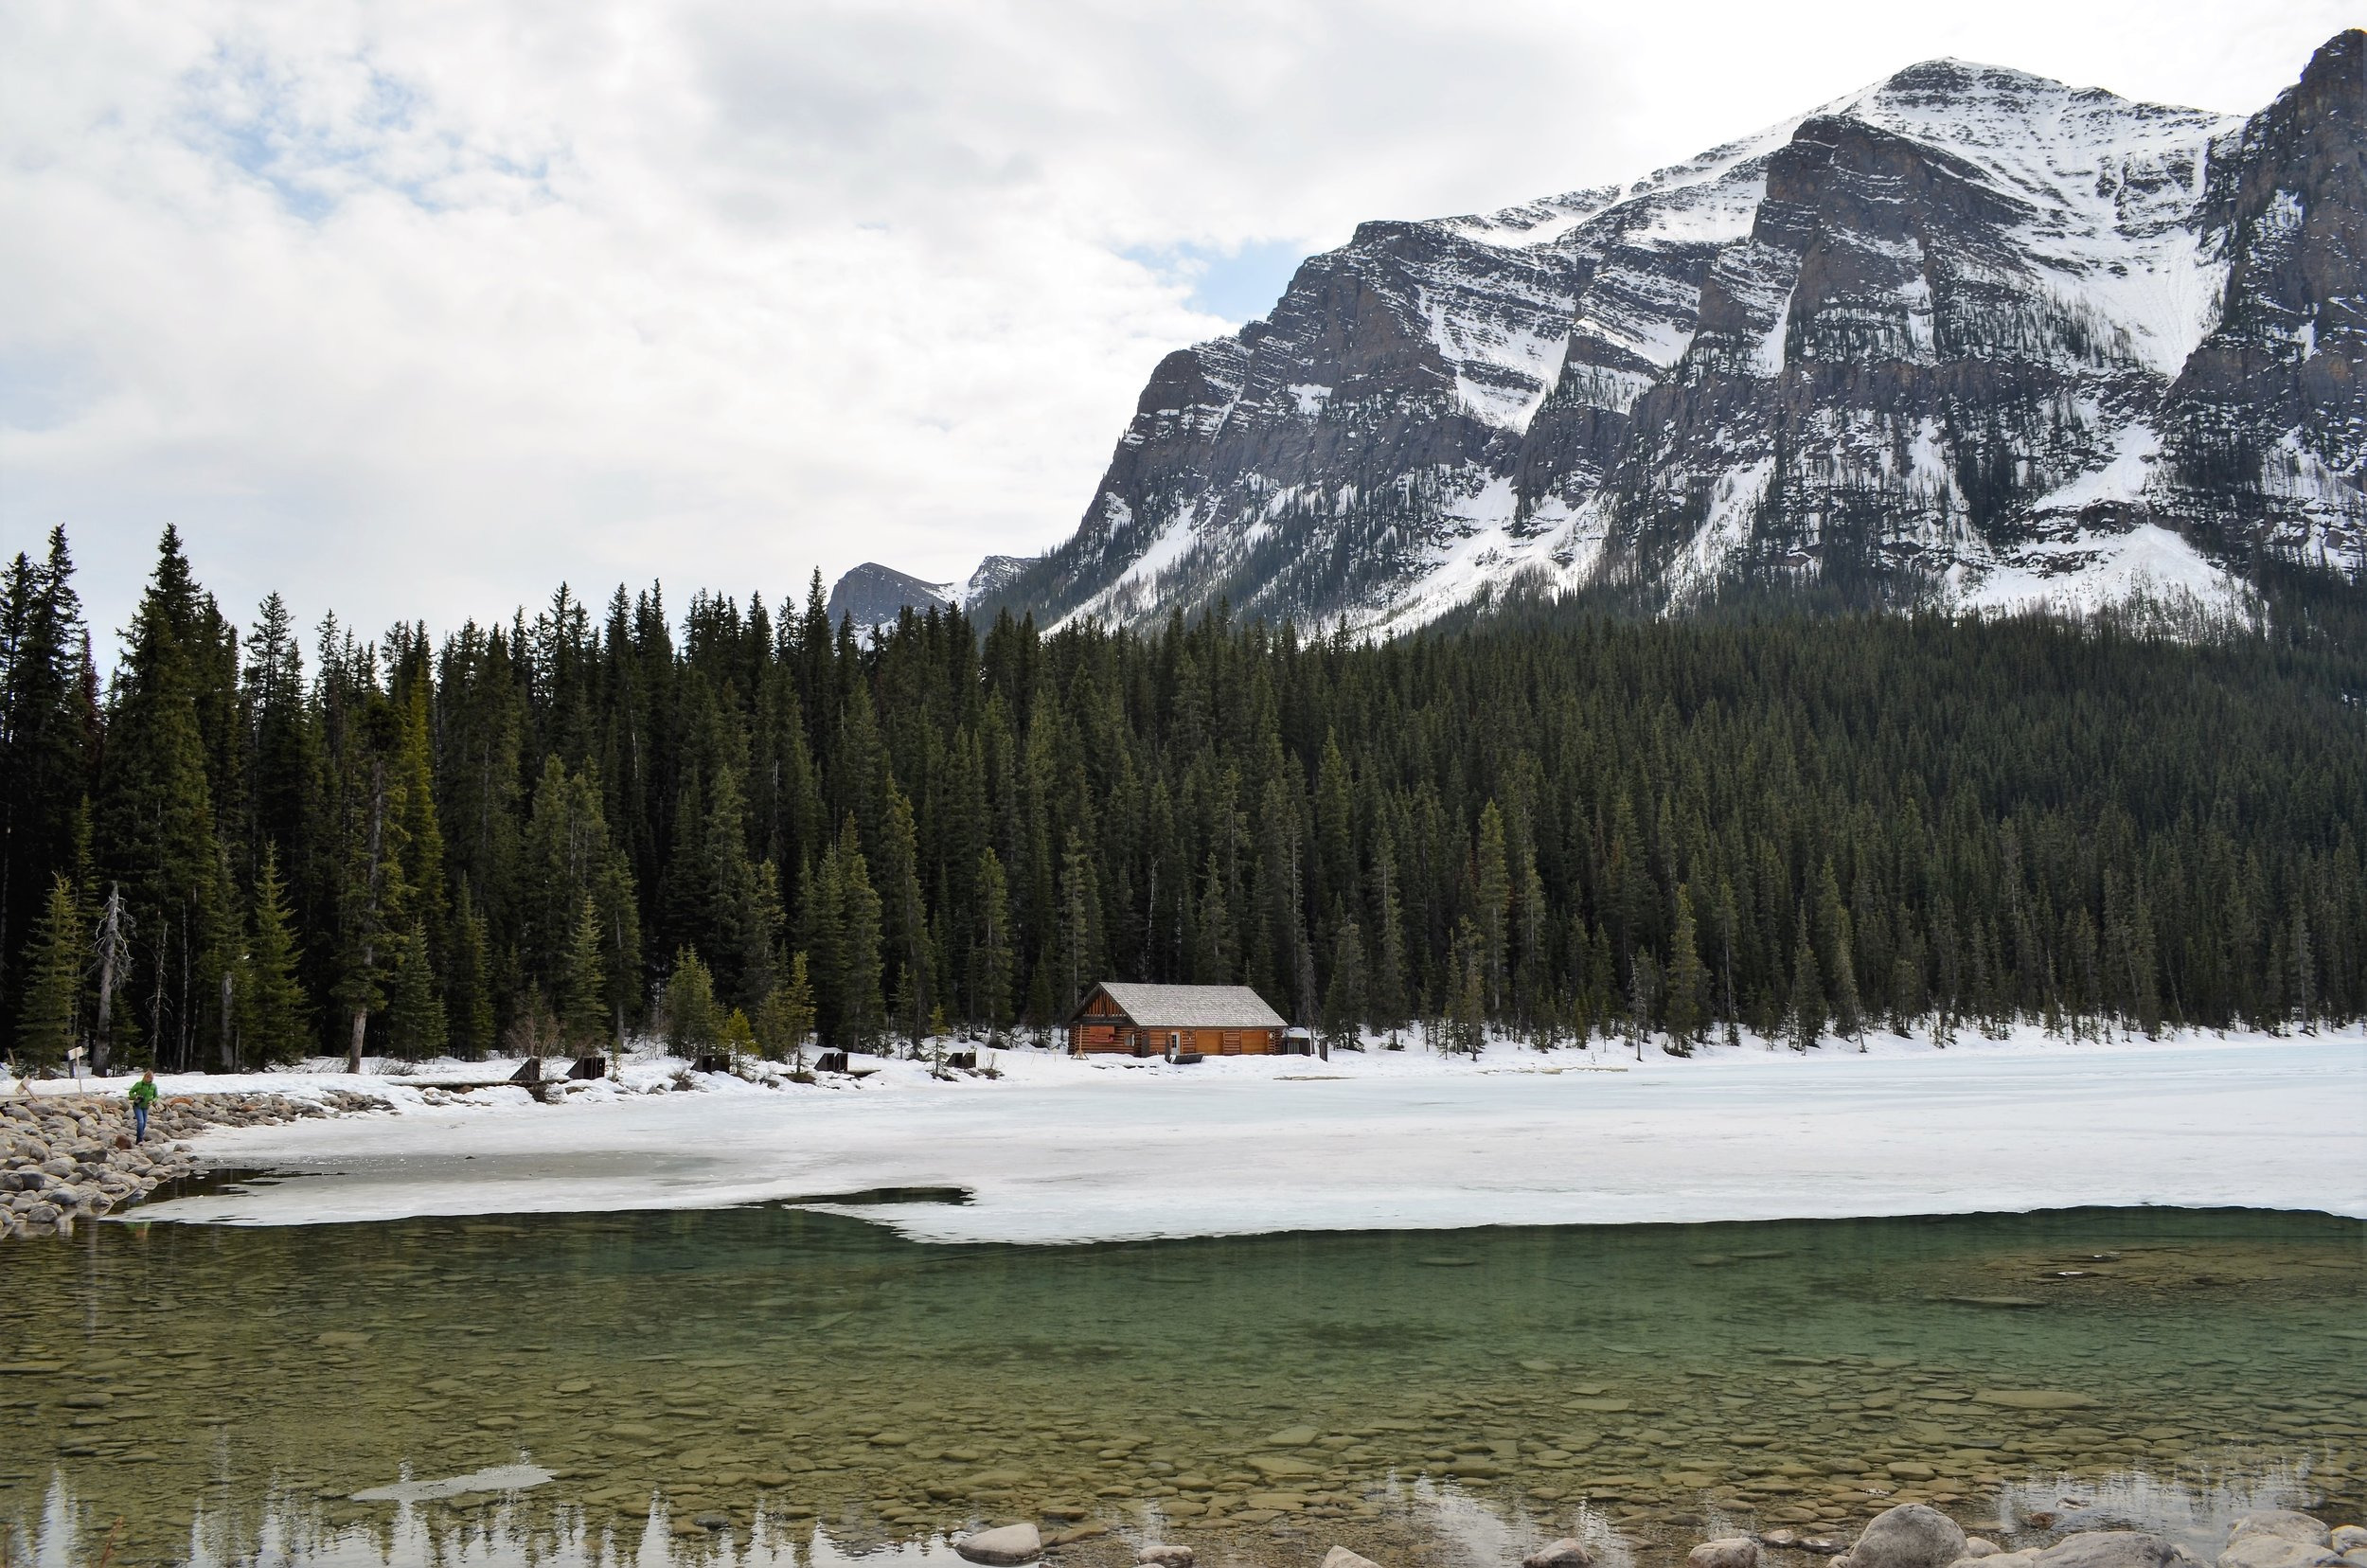 MUST SEE Cabin on Lake Louise, Banff National Park, Alberta, Canada / warporweft.com